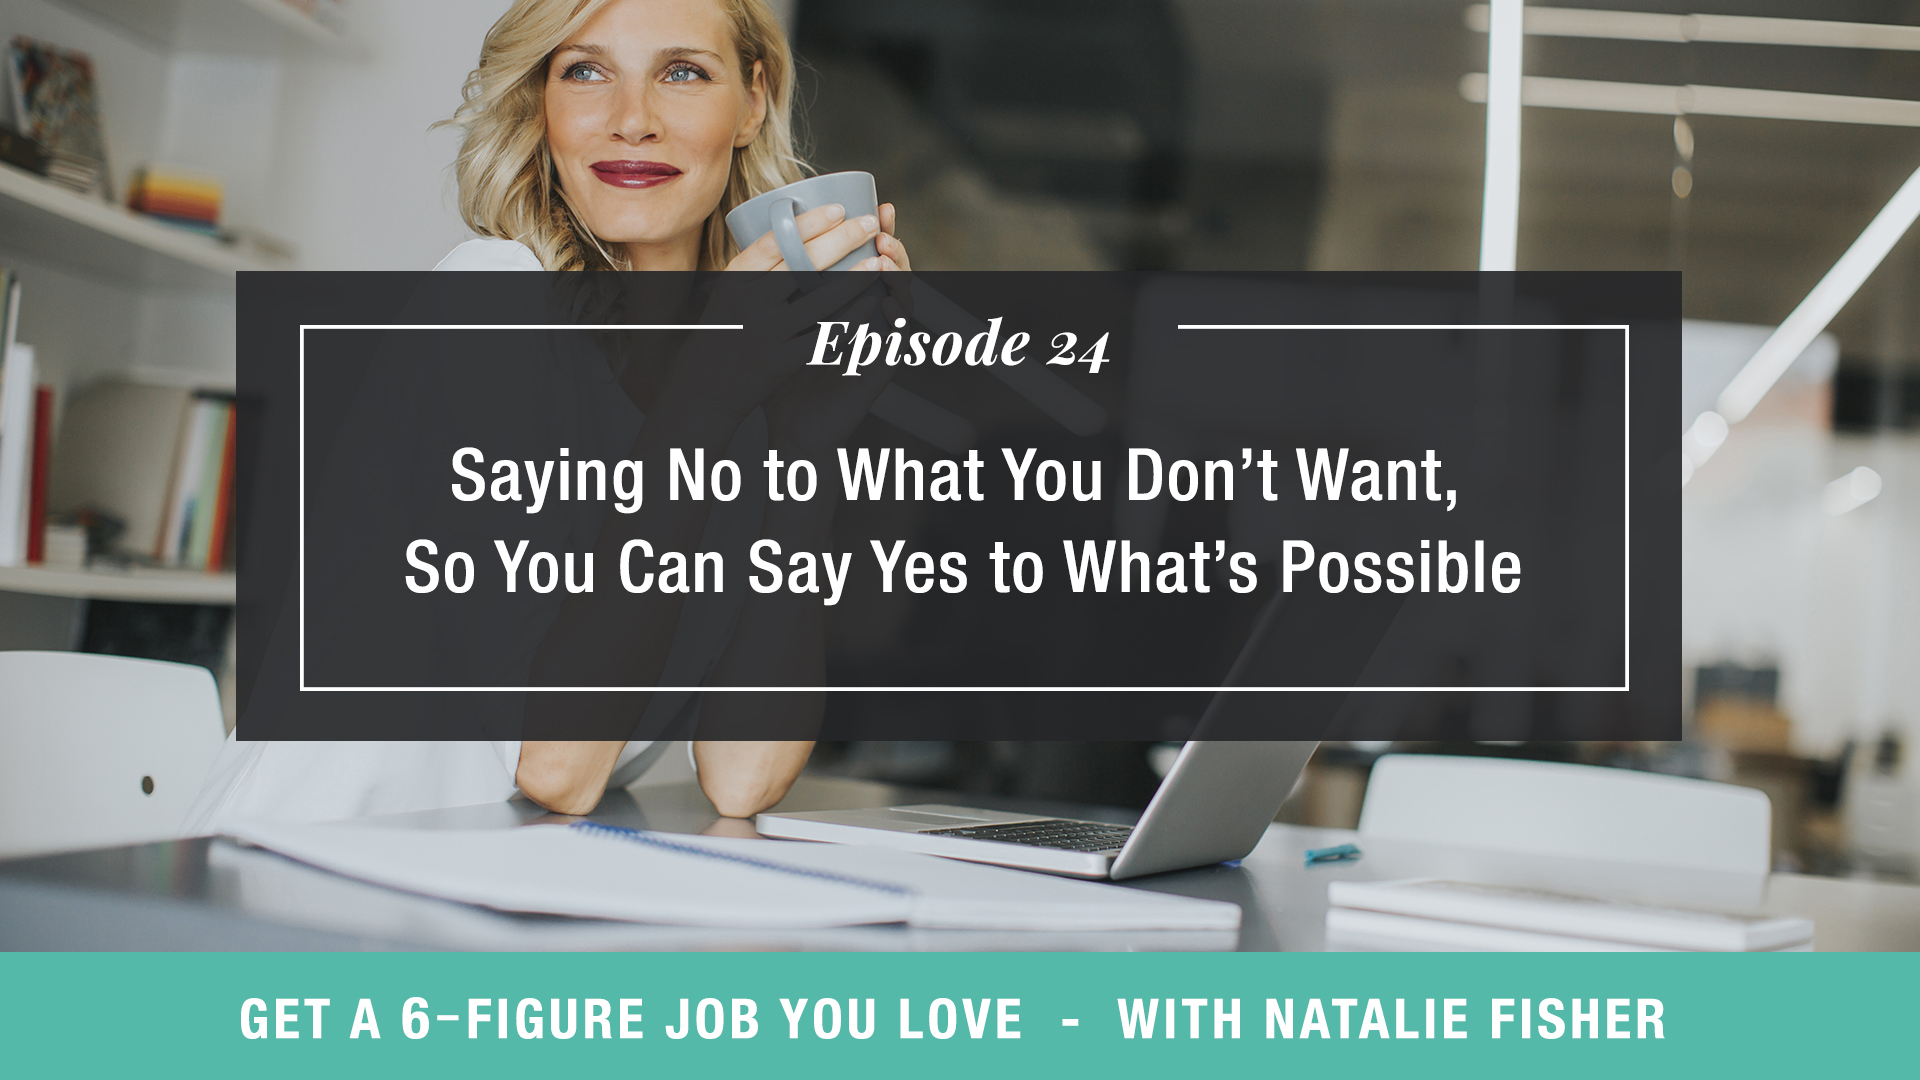 Saying No to What You Don't Want, So You Can Say Yes to What's Possible